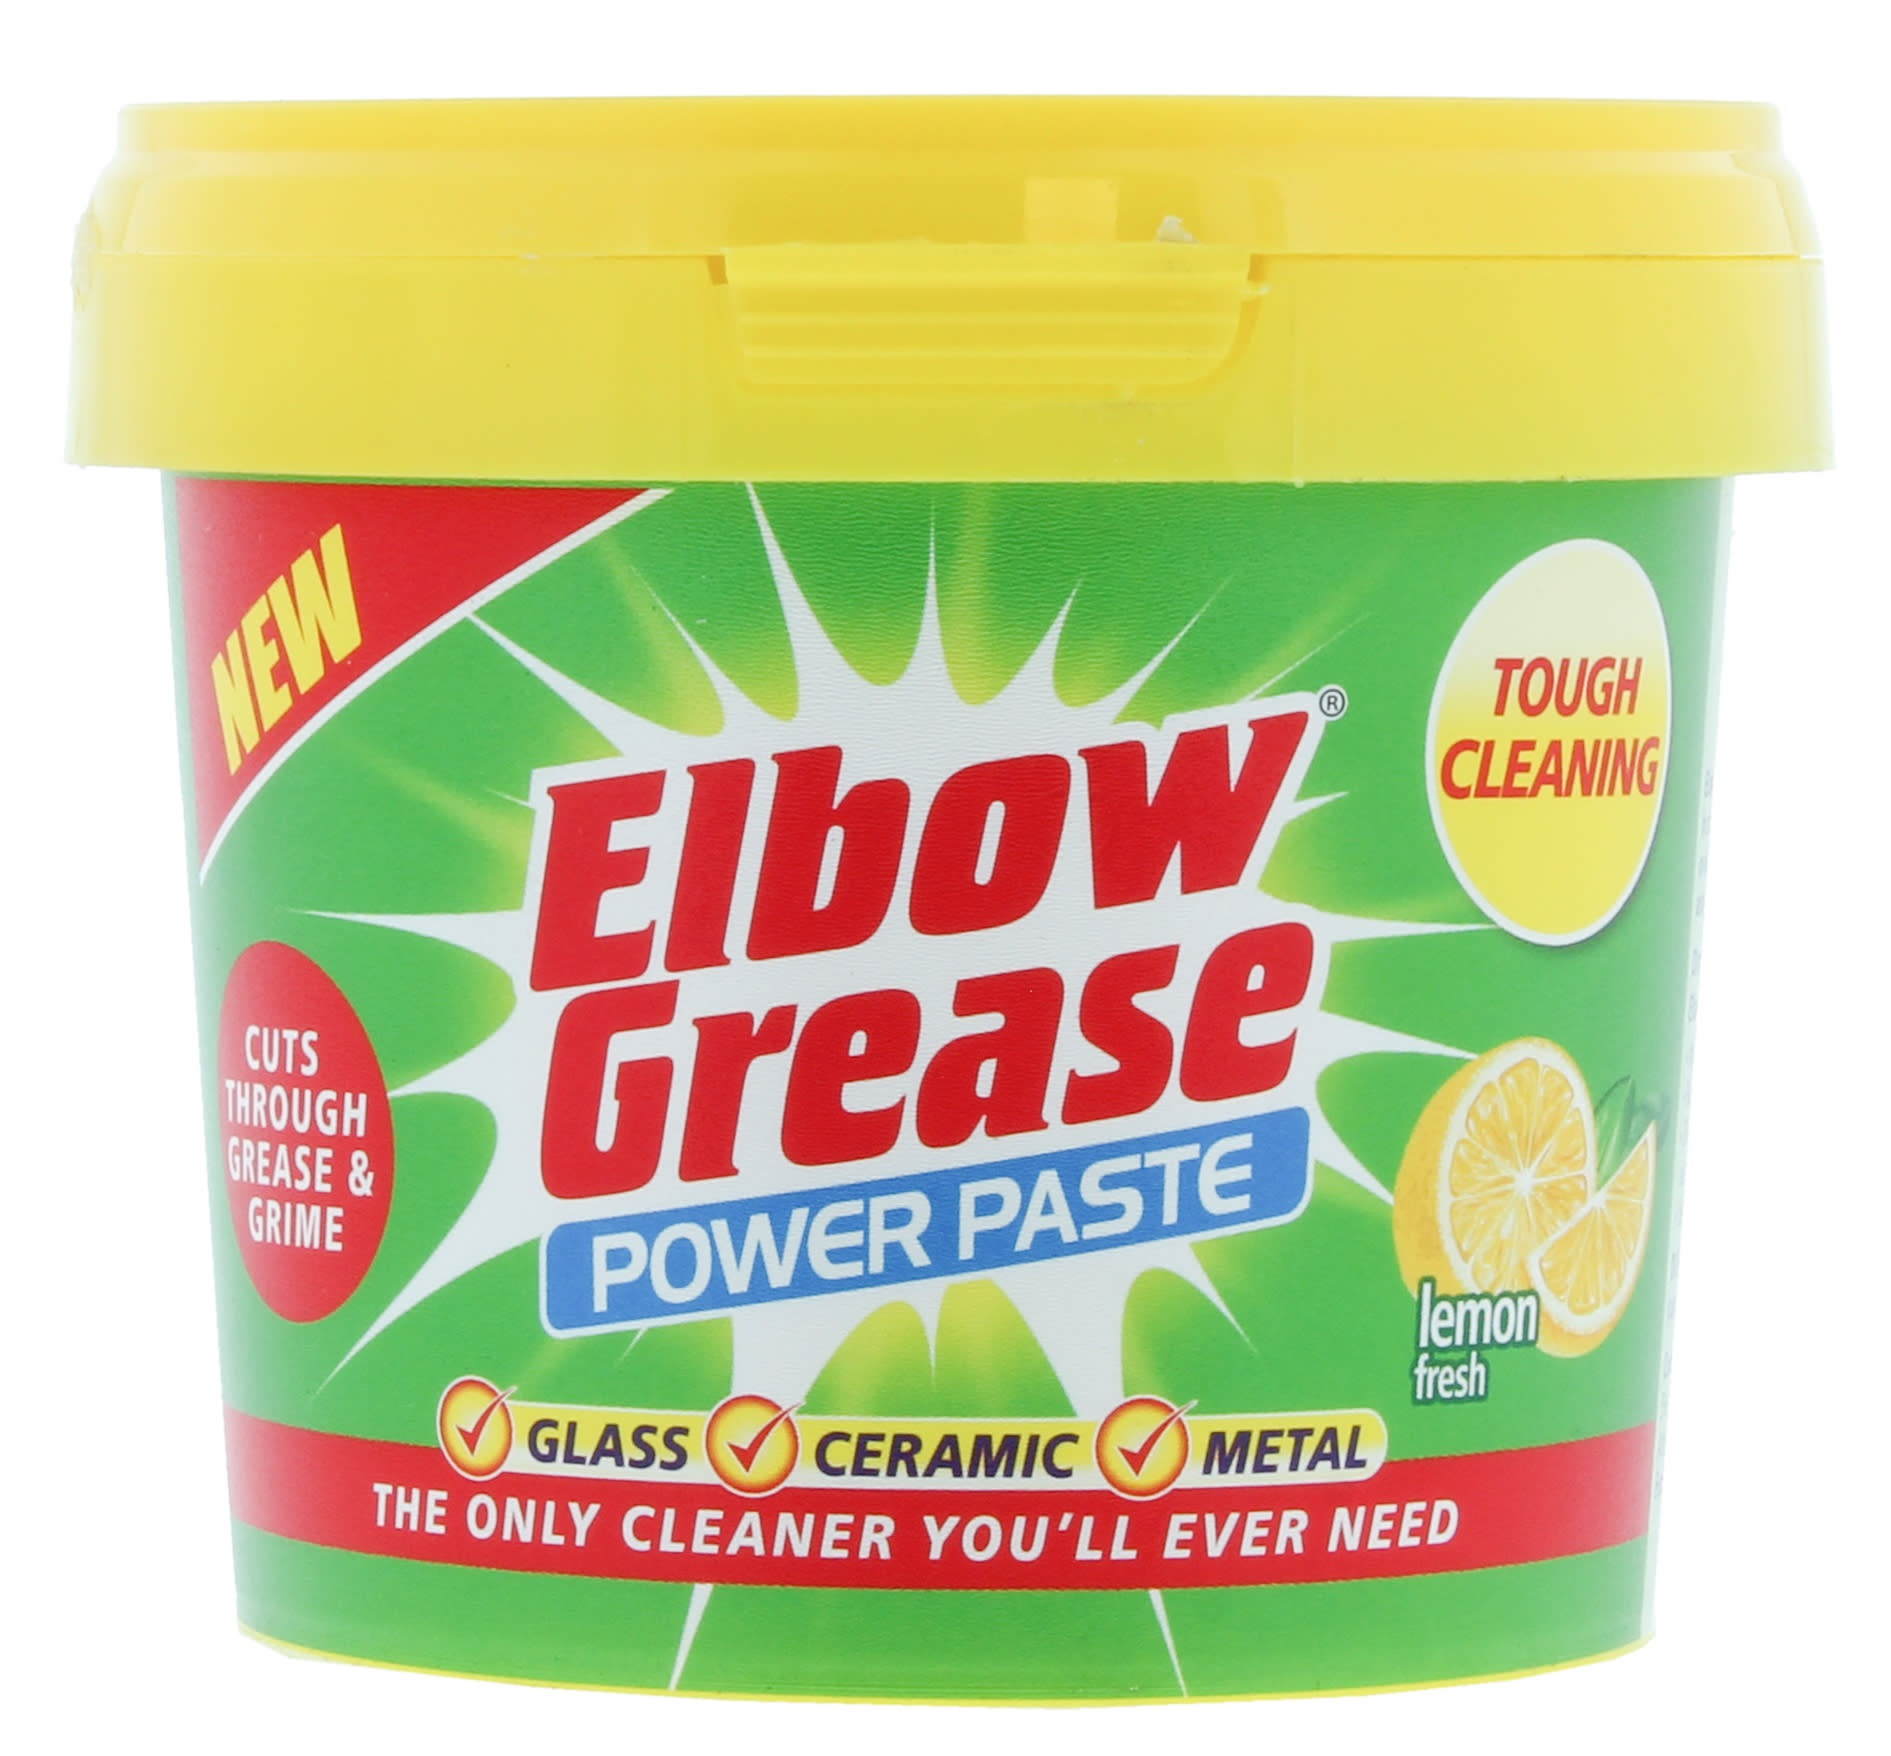 ELBOW GREASE 500G POWER PASTE